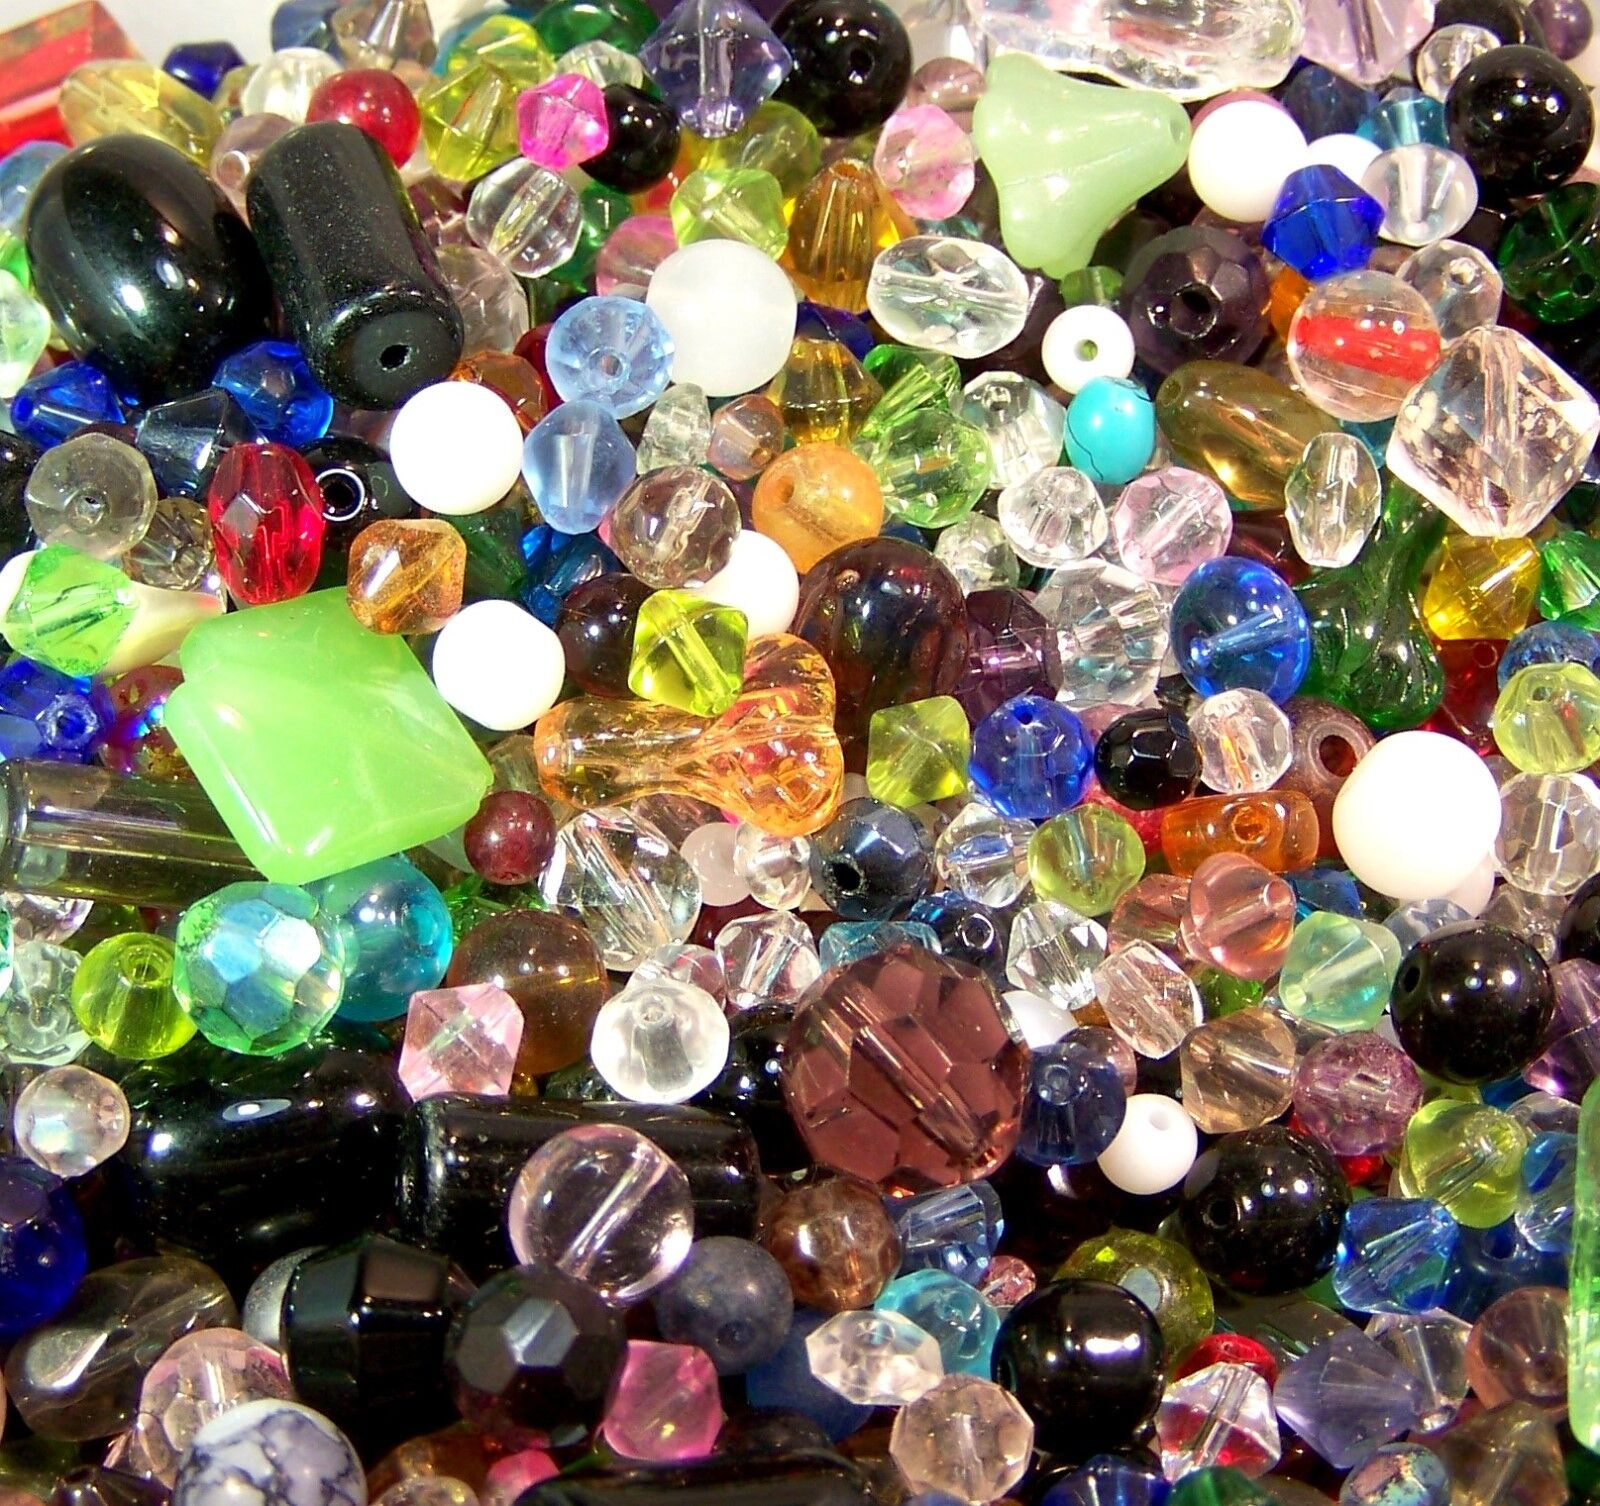 x wholesale bead supplies australia all buy glass stock beads in bulk sorts c spacetrader mix kg